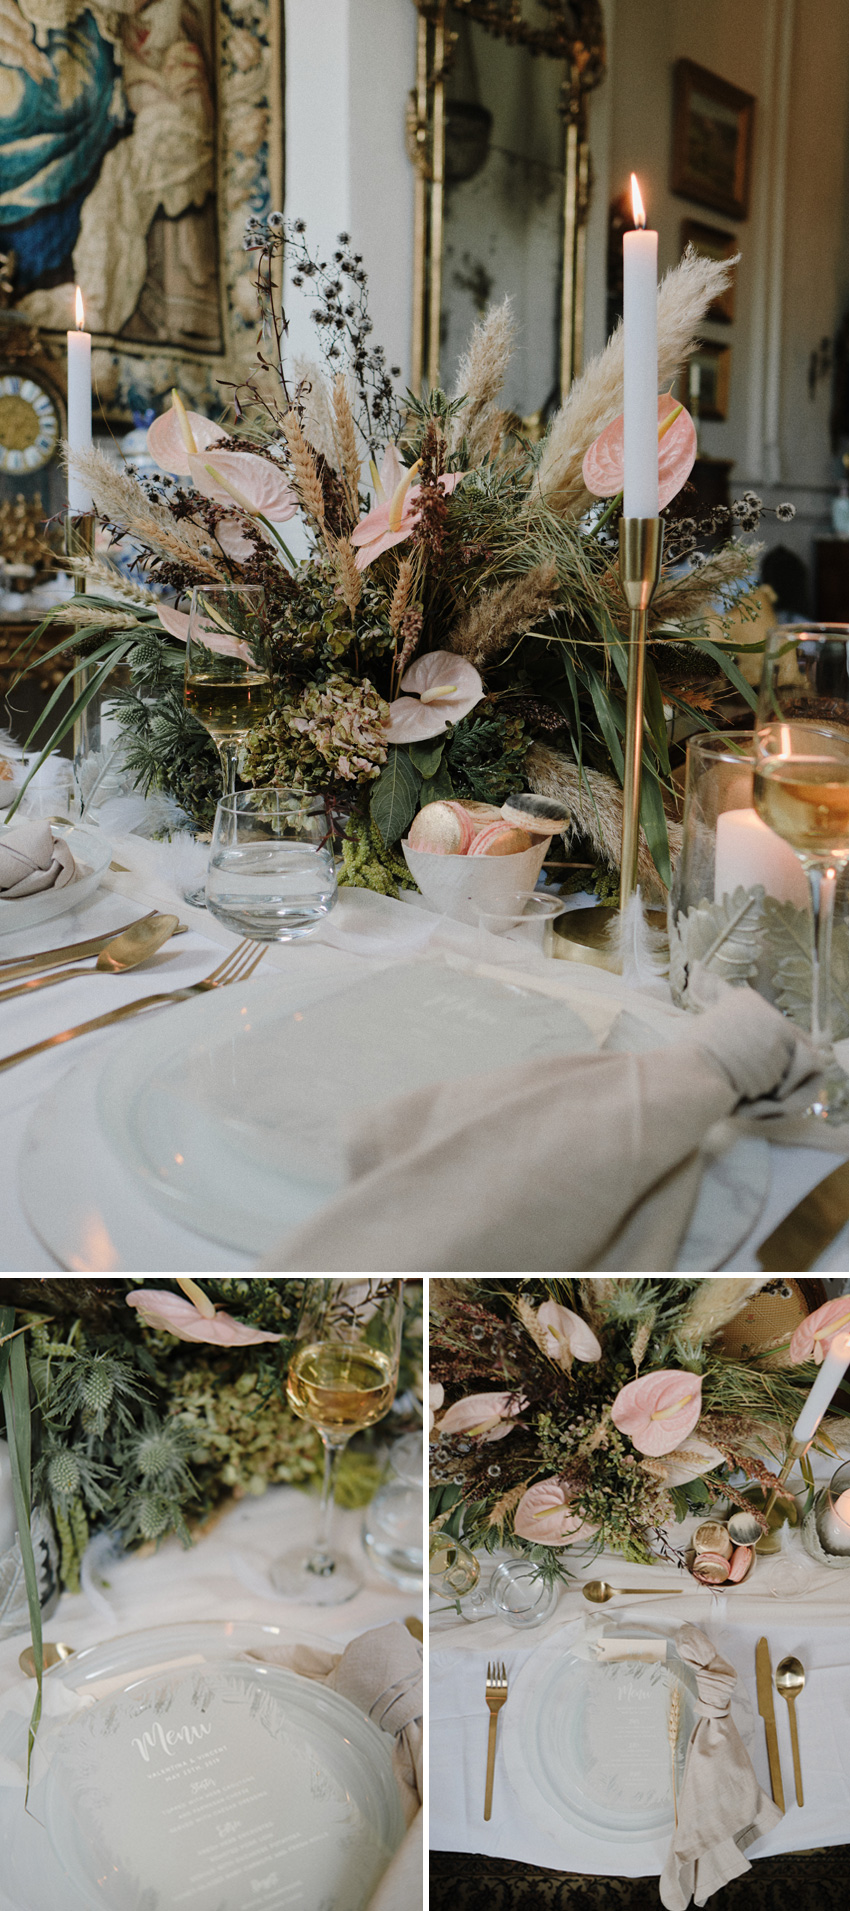 A french table escape inspired in Swan Lake ballet in Perfect Wedding Magazine